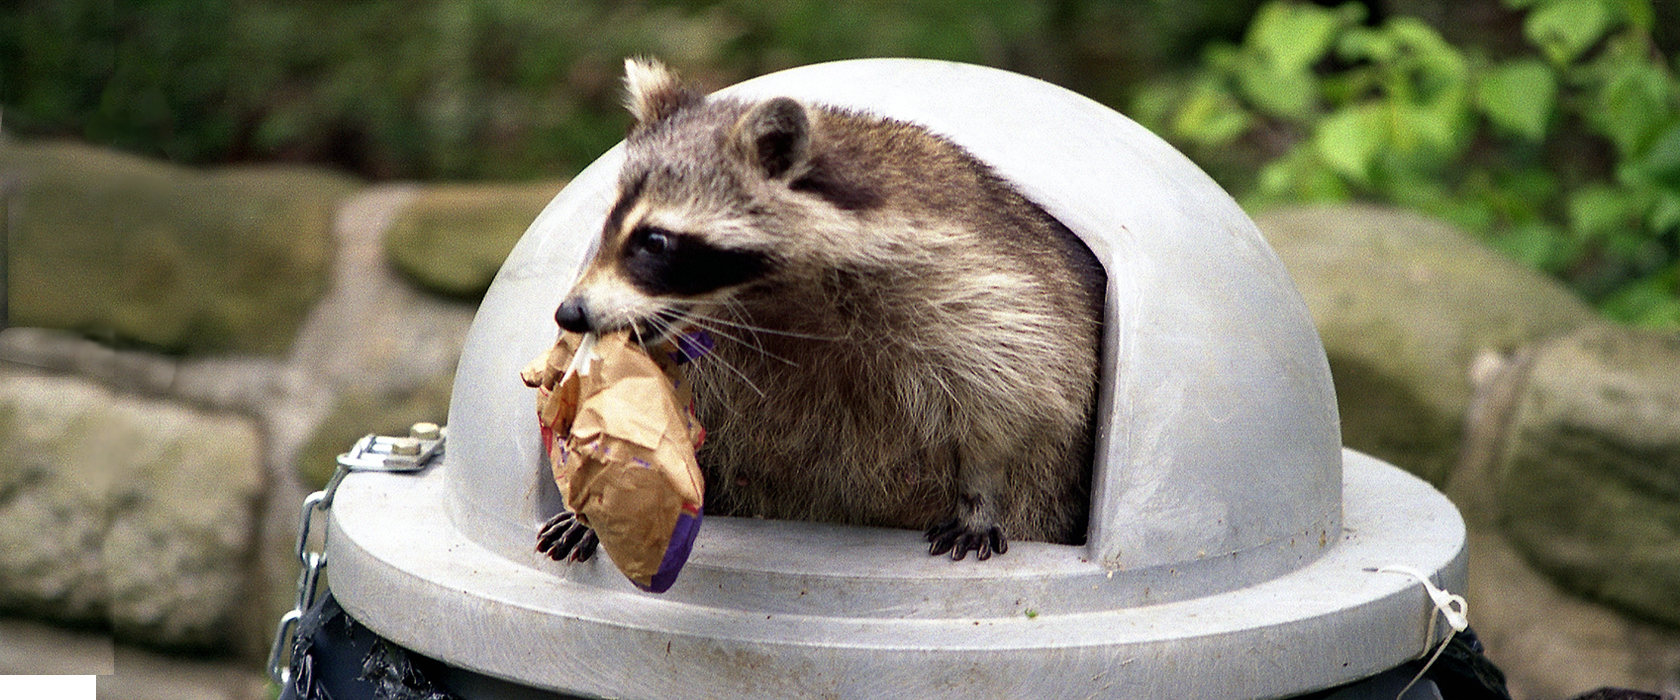 Raccoon in trash bin